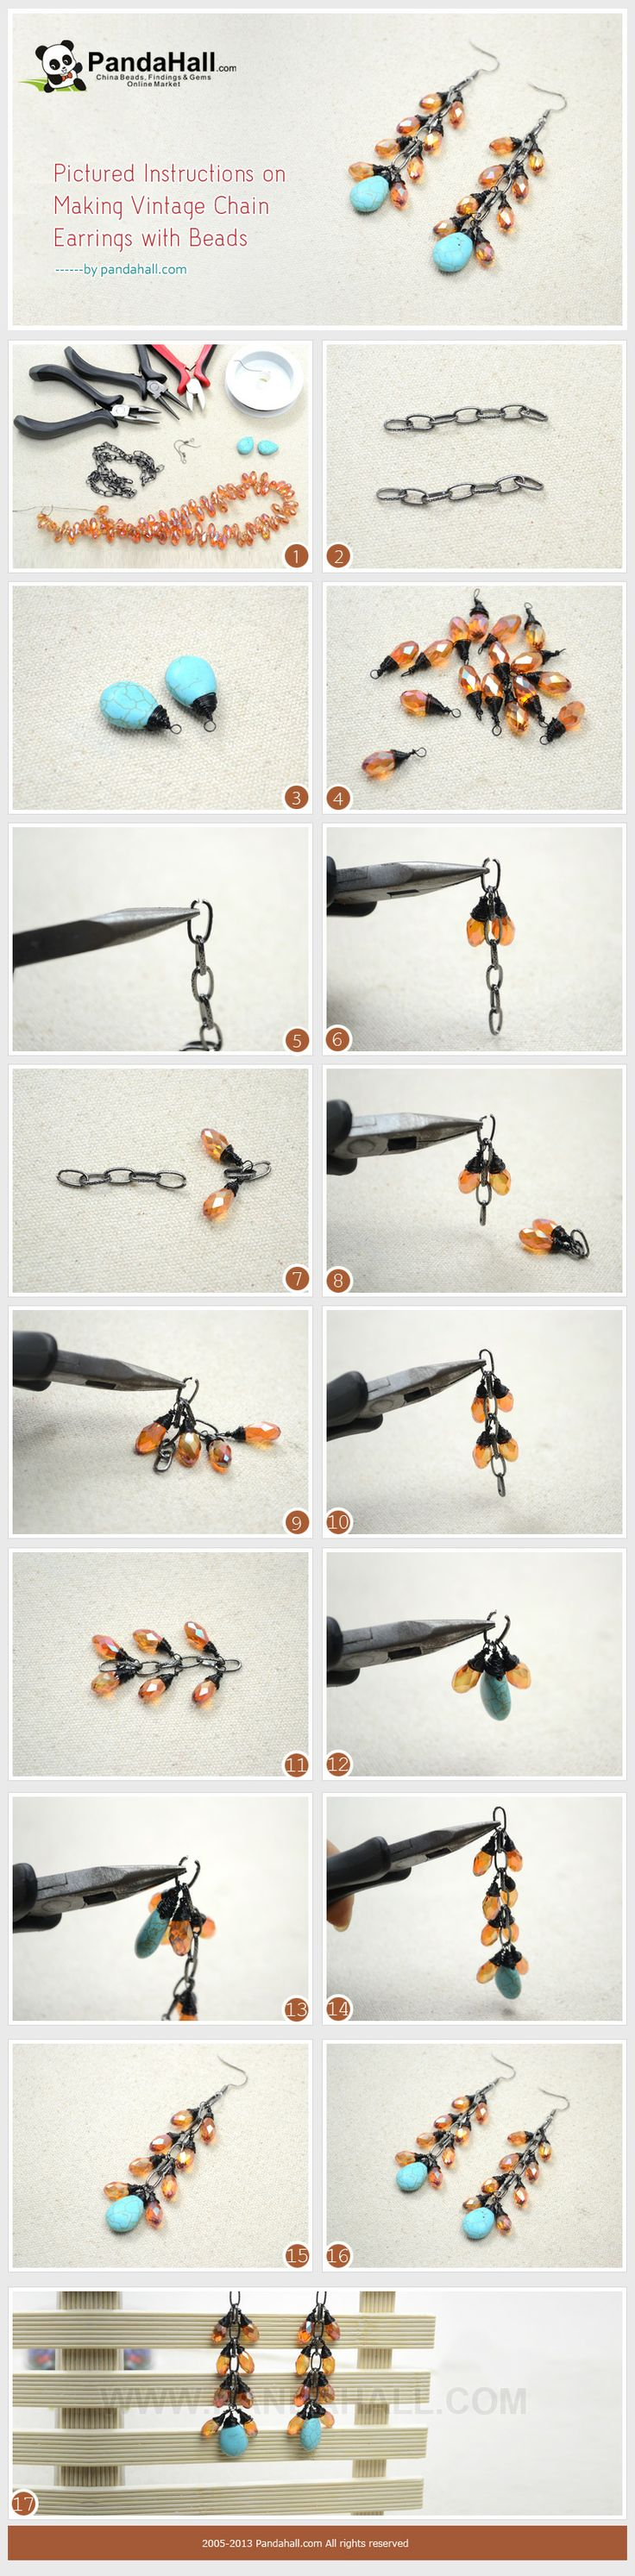 Pictured Instructions on Making Vintage Chain Earrings with Beads